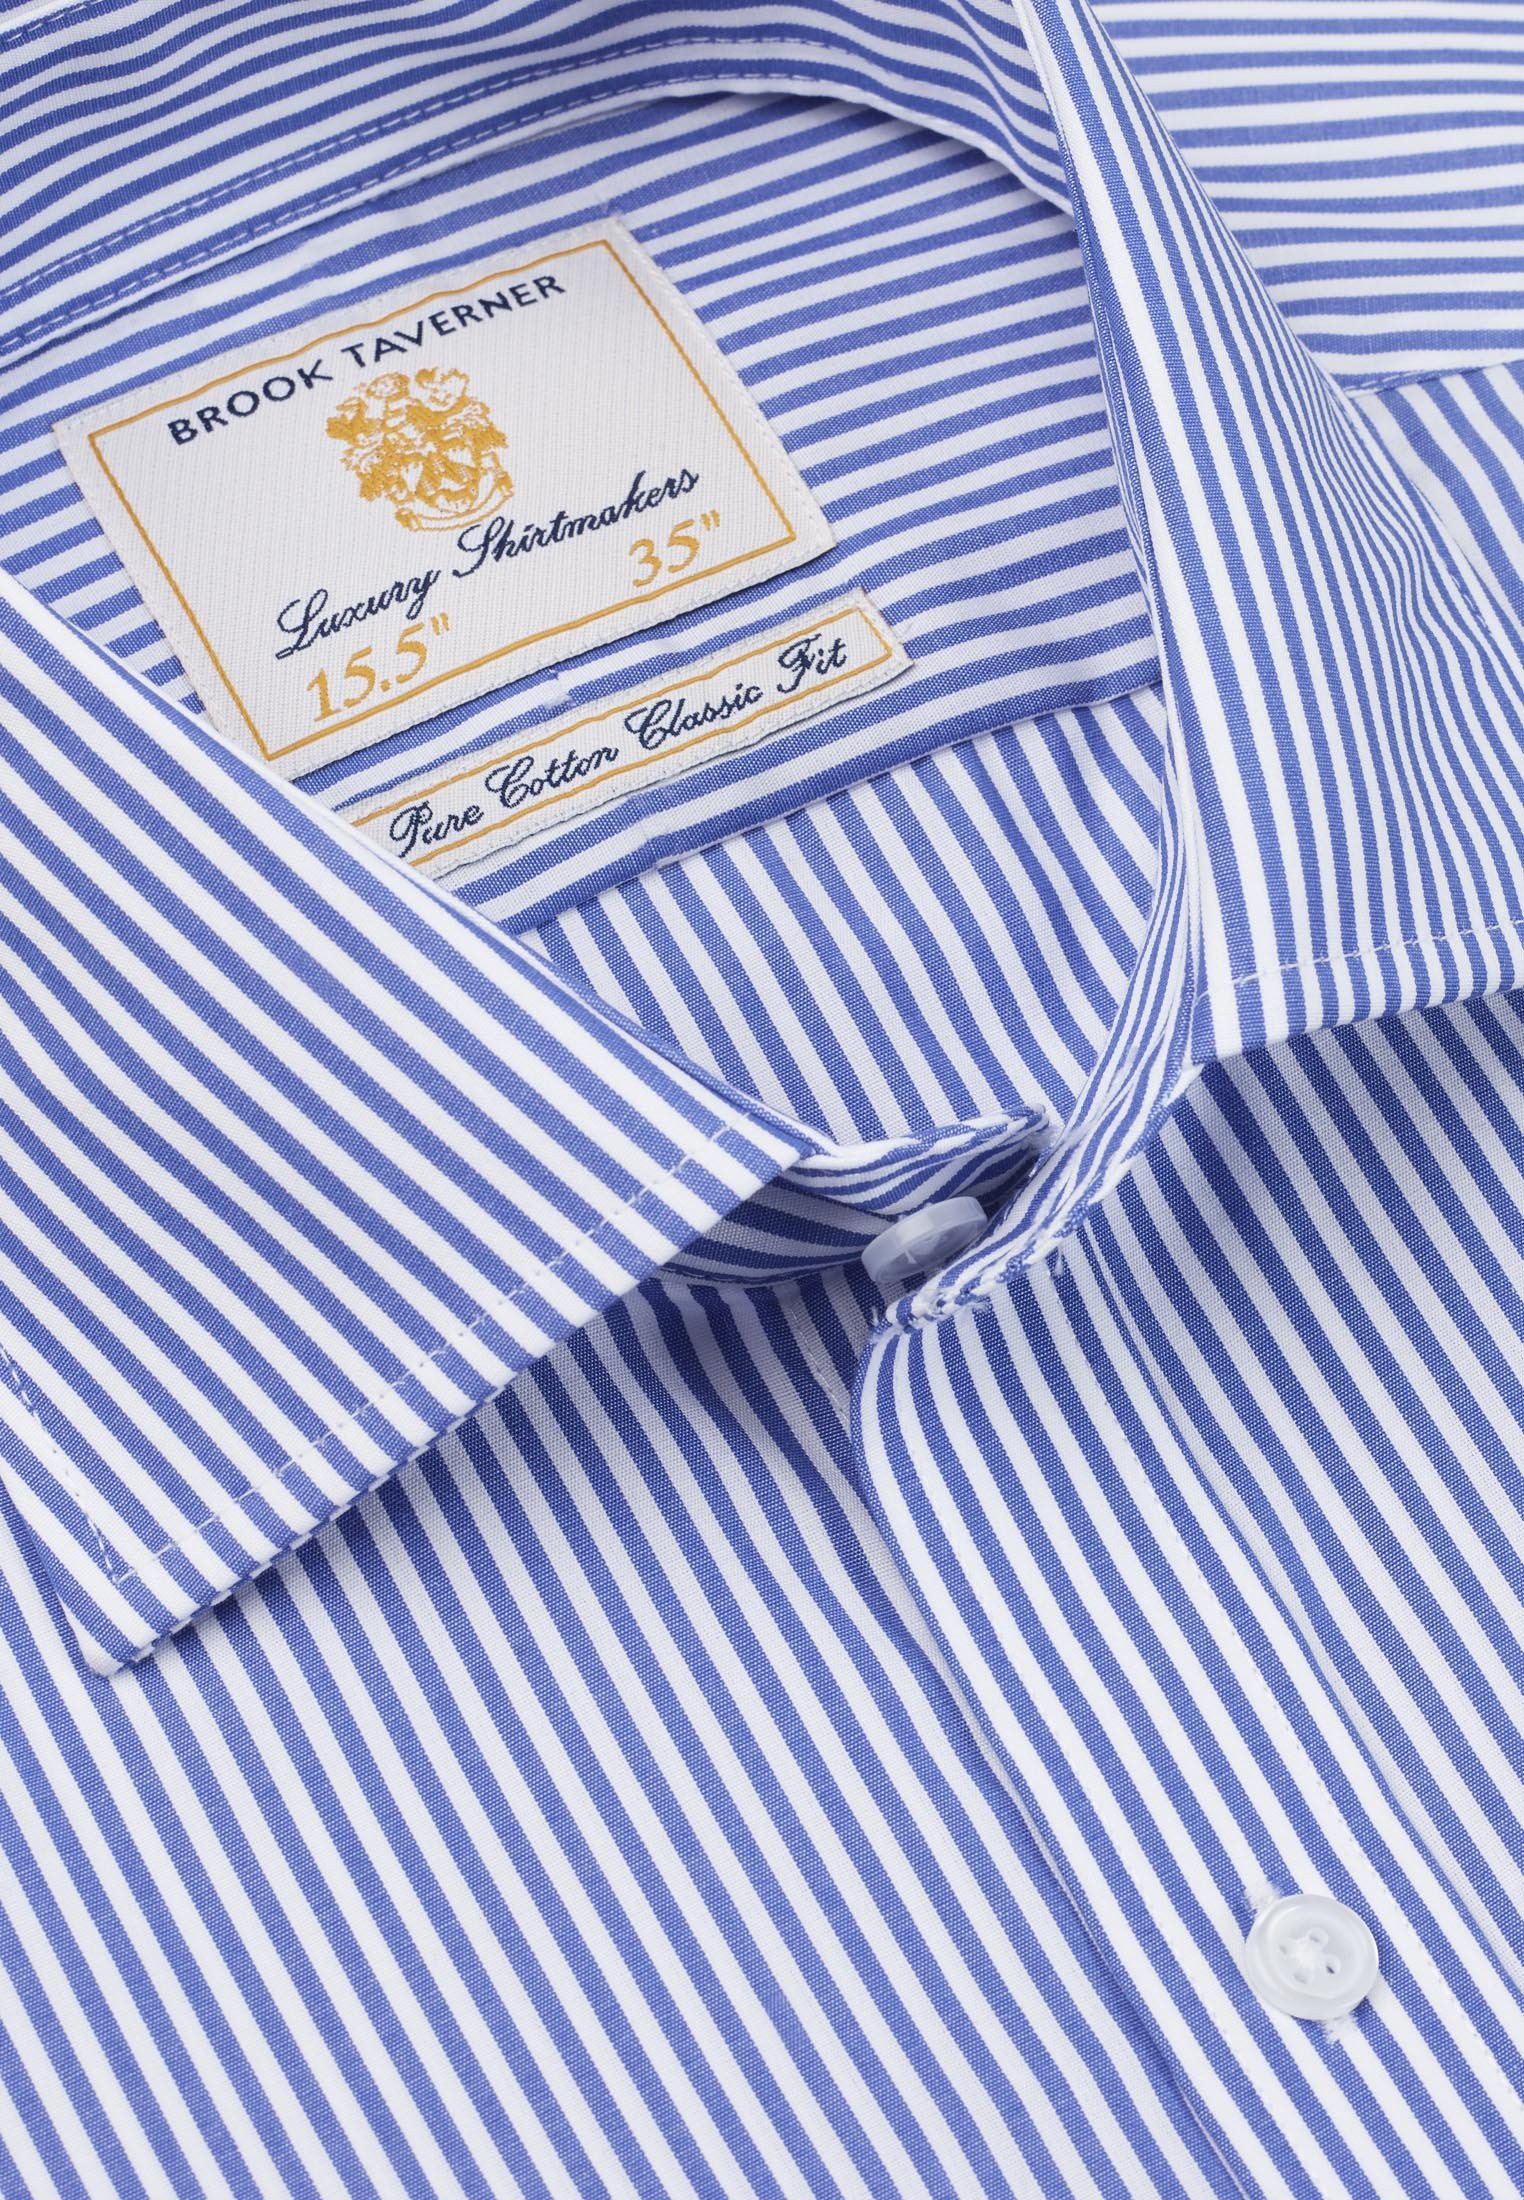 Mid Blue Bengal Stripe 100% Easycare Cotton Button Cuff Shirt